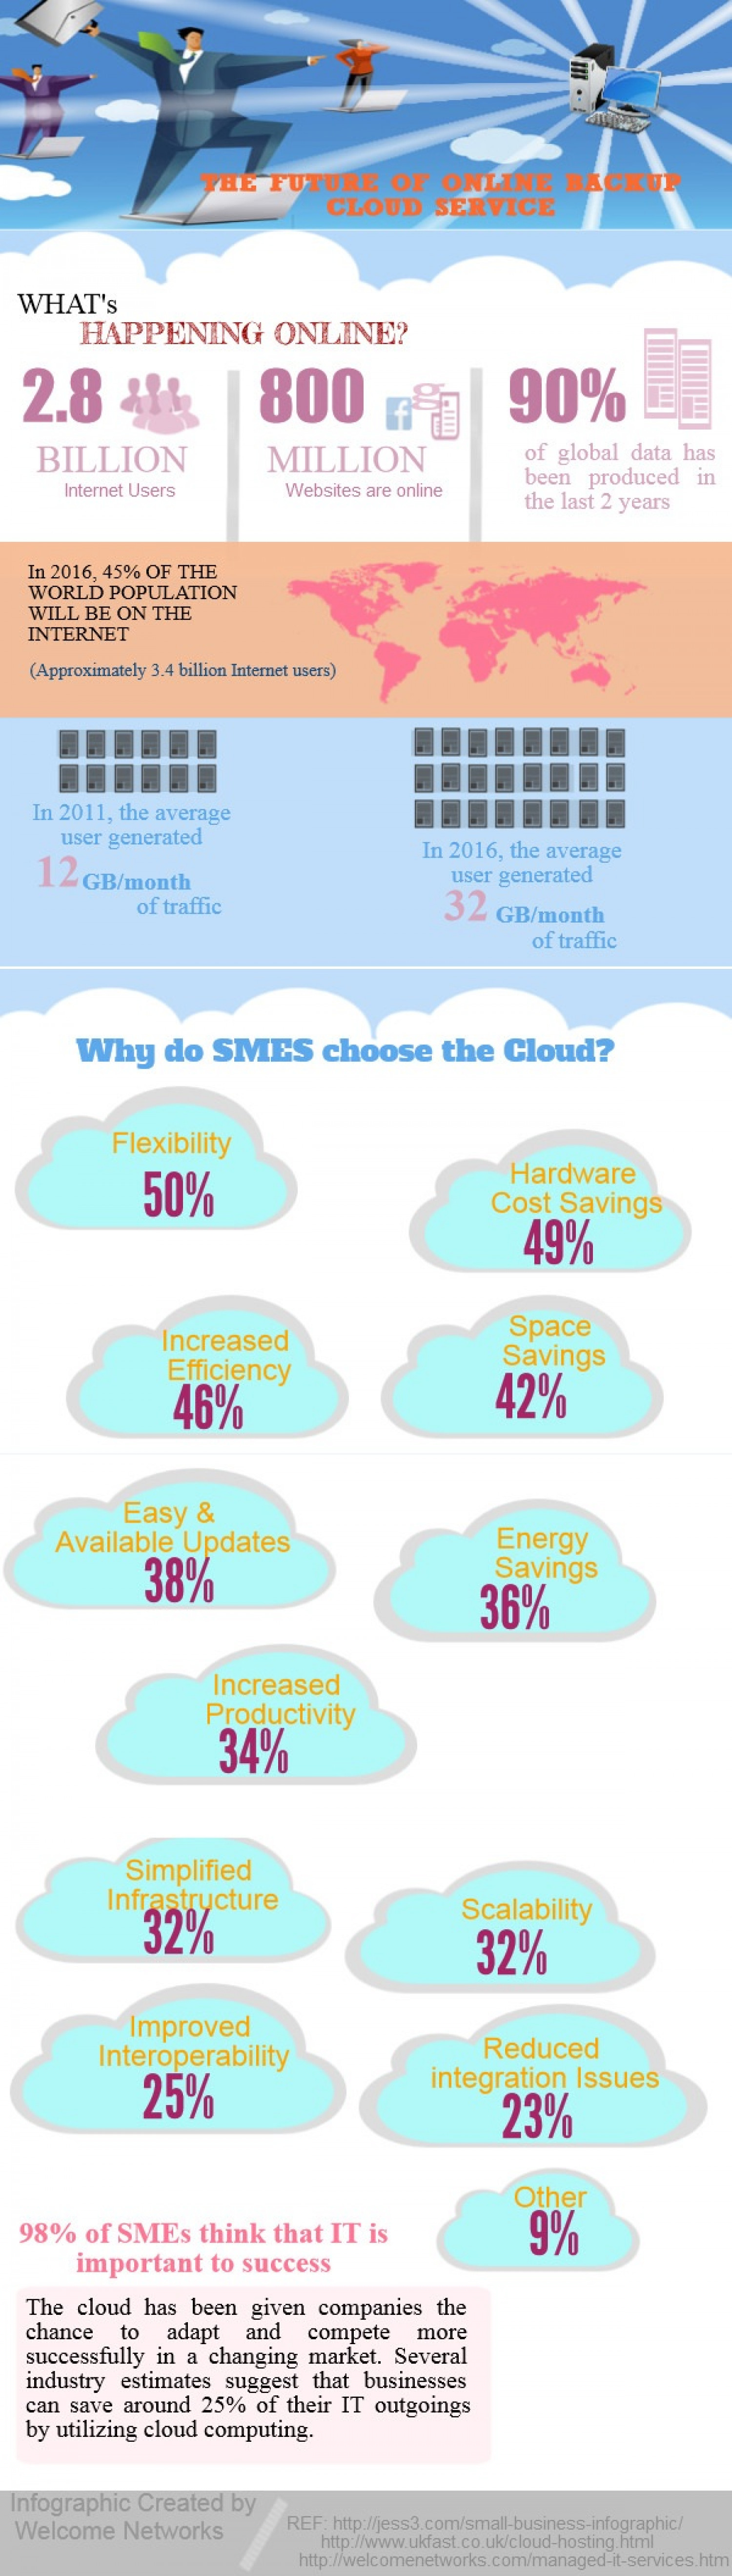 THE FUTURE OF ONLINE BACKUP: CLOUD SERVICE Infographic